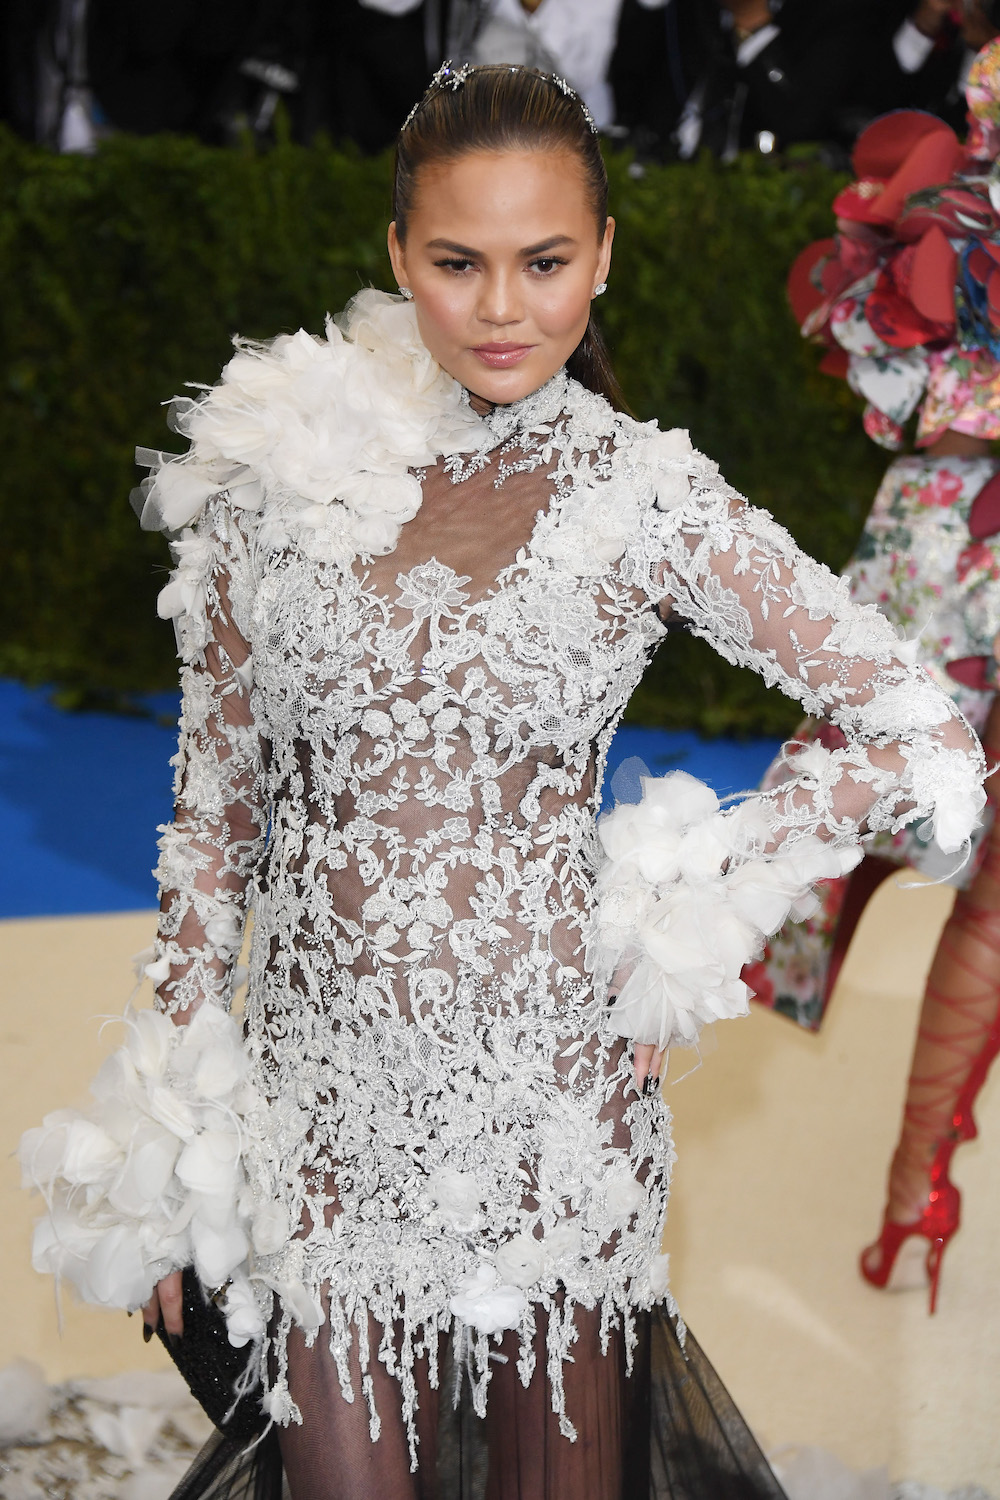 NEW YORK, NY - MAY 01:  Chrissy Teigen attends  Rei Kawakubo/Comme des Garcons: Art Of The In-Between  Costume Institute Gala - Arrivals at Metropolitan Museum of Art on May 1, 2017 in New York City.  (Photo by Venturelli/WireImage)